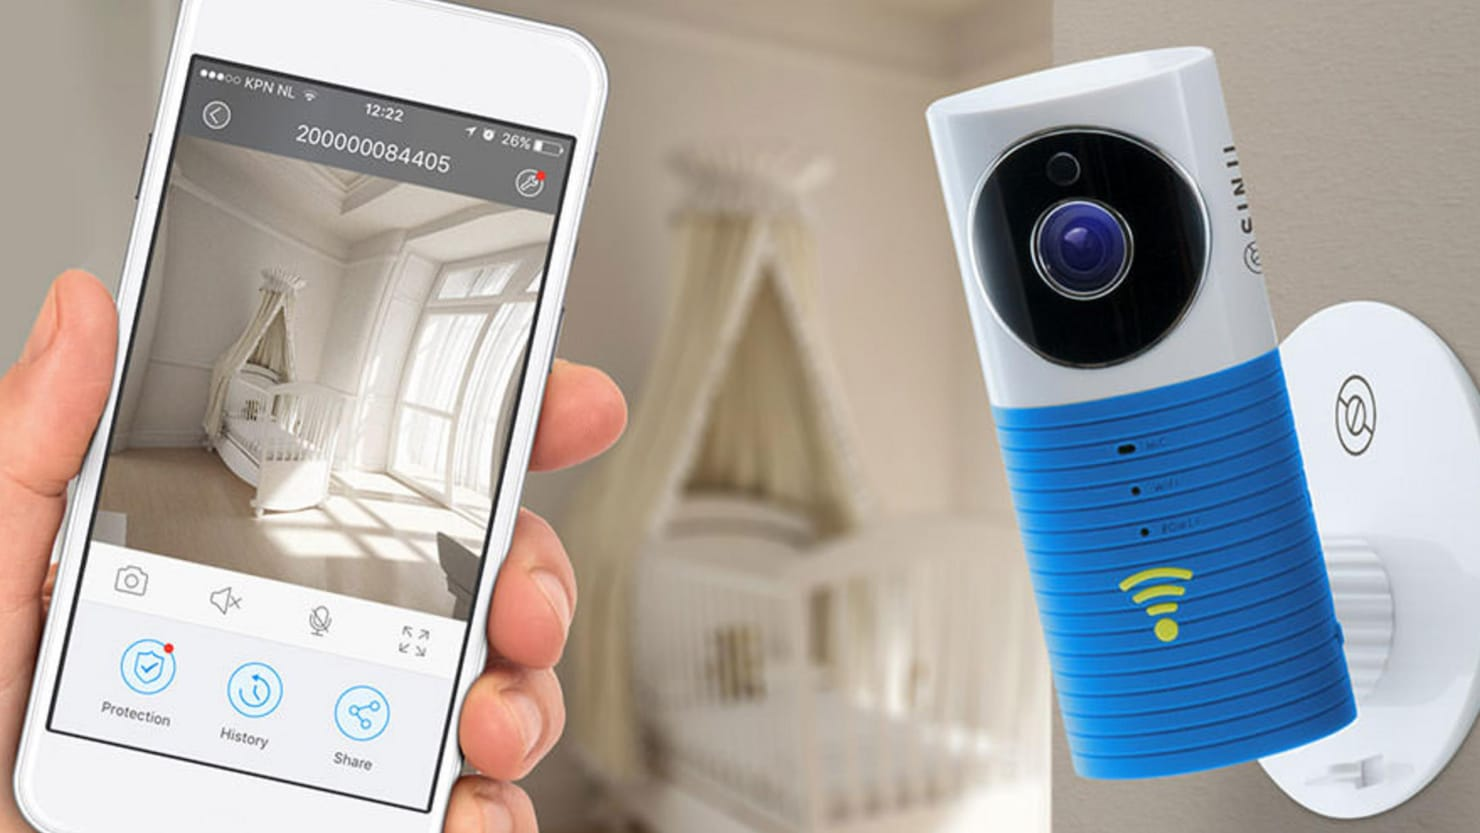 Protect Your Space With This Affordable Smart Security Cam